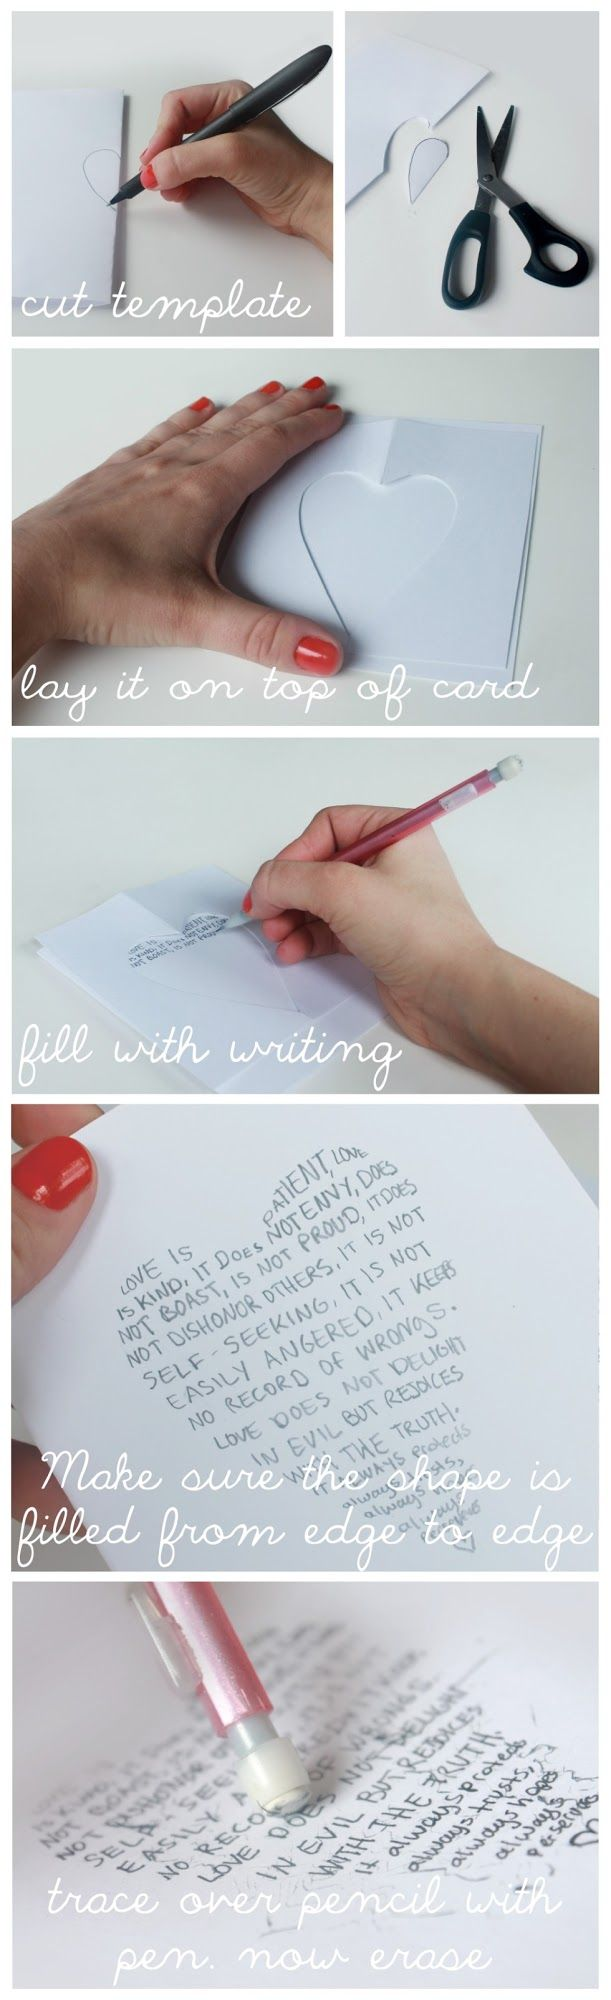 """We Lived Happily Ever After: Use Cookie Cutters to """"Write Shapes"""" on Greeting Cards!"""